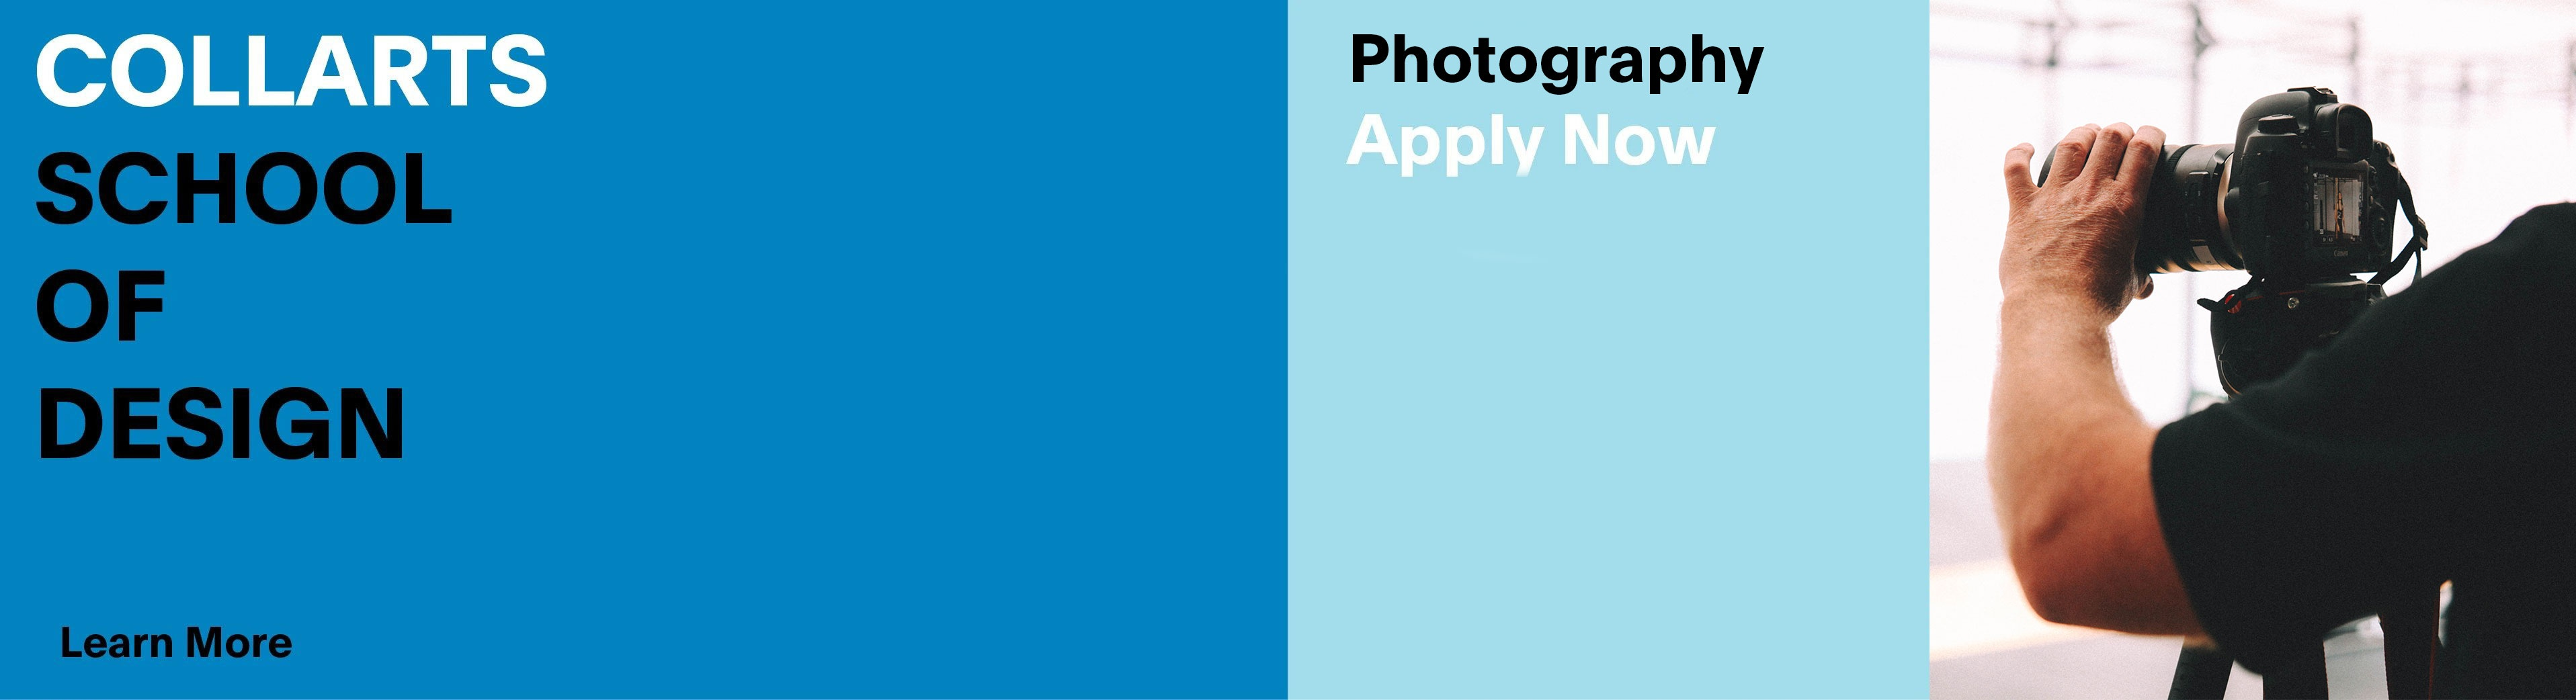 Photography - Apply Now